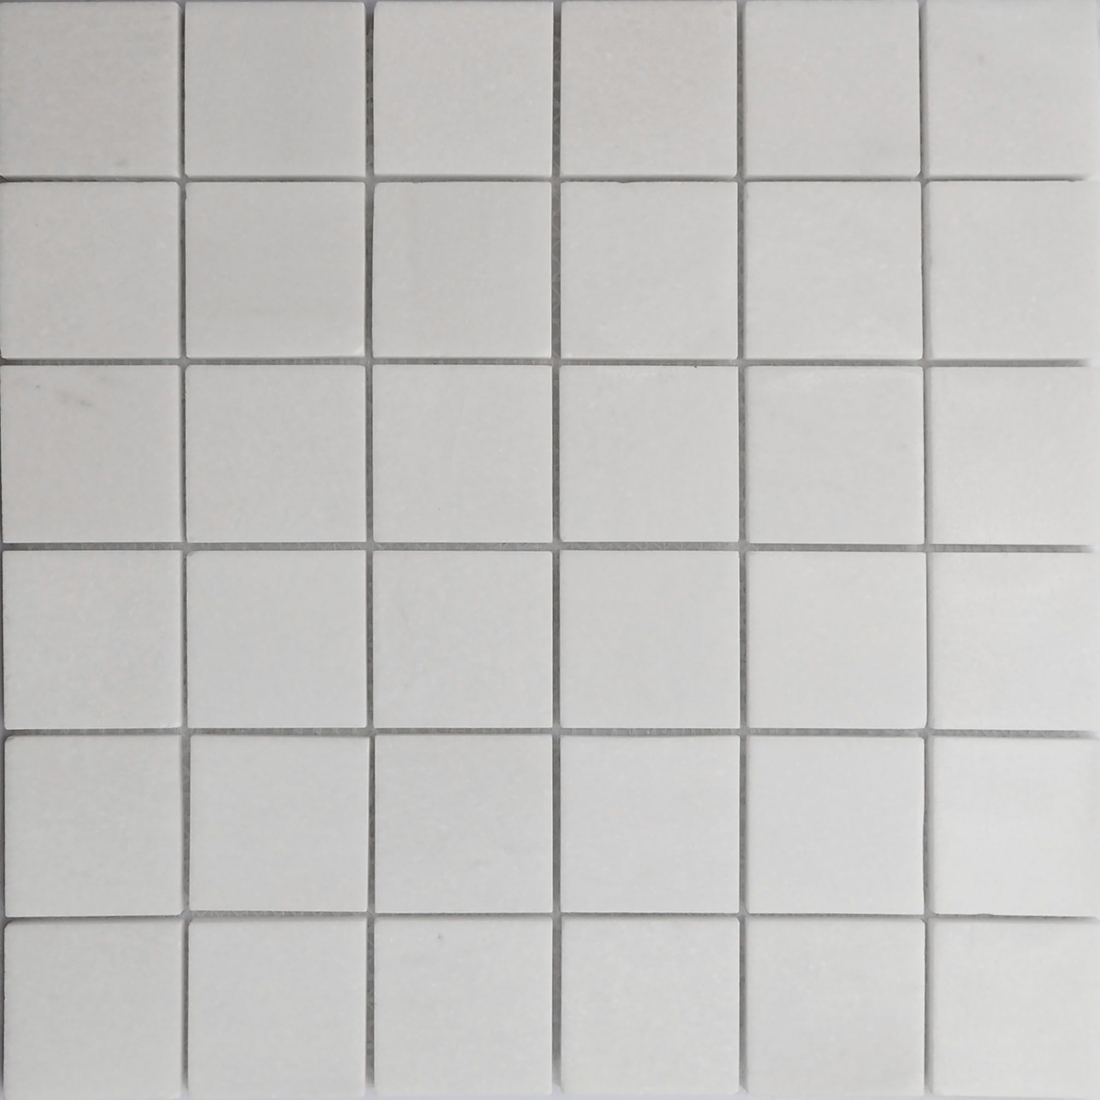 Ottawa backsplash tiles best of best ottawa granite countertops ottawas best selection of kitchen backsplash tiles glass marble stainless steel mosaics ceramic and porcelain thousands of backsplash choices dailygadgetfo Images